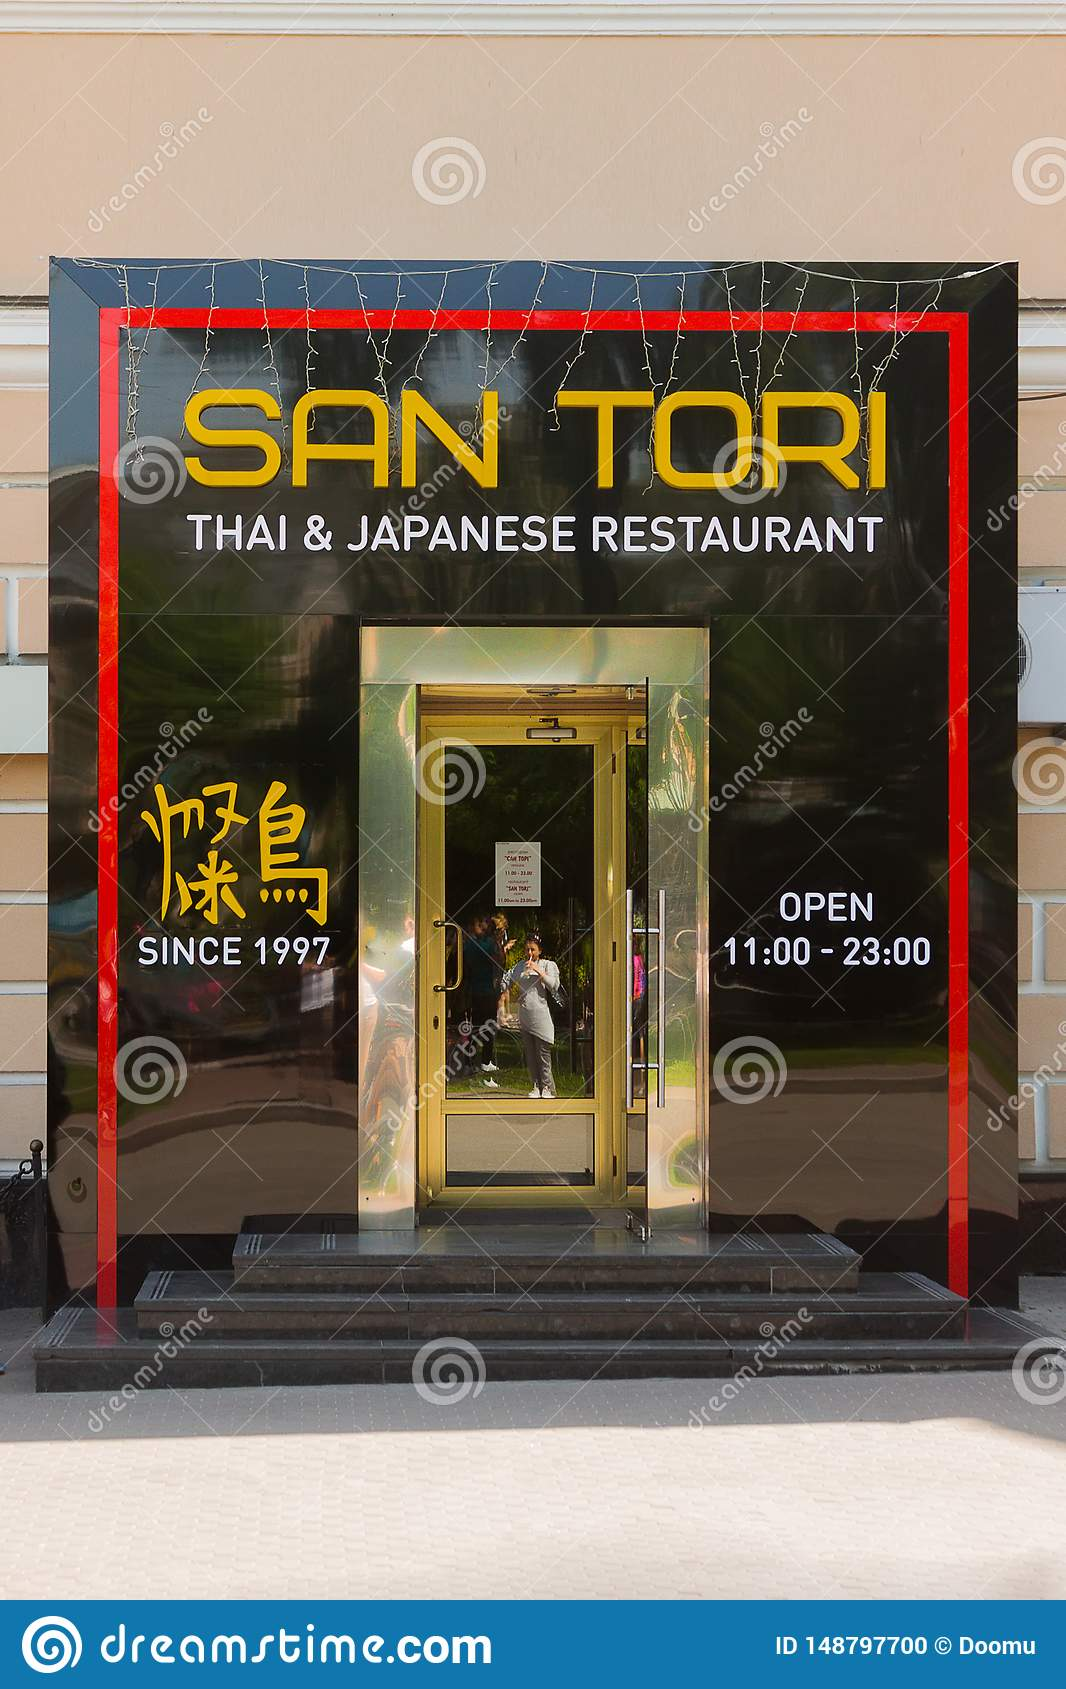 KIEV, UKRAINE - May, 18: San Tori Thai and Japanese Restaurant in Touristic Area in the The Old Town of Kyiv, Ukraine